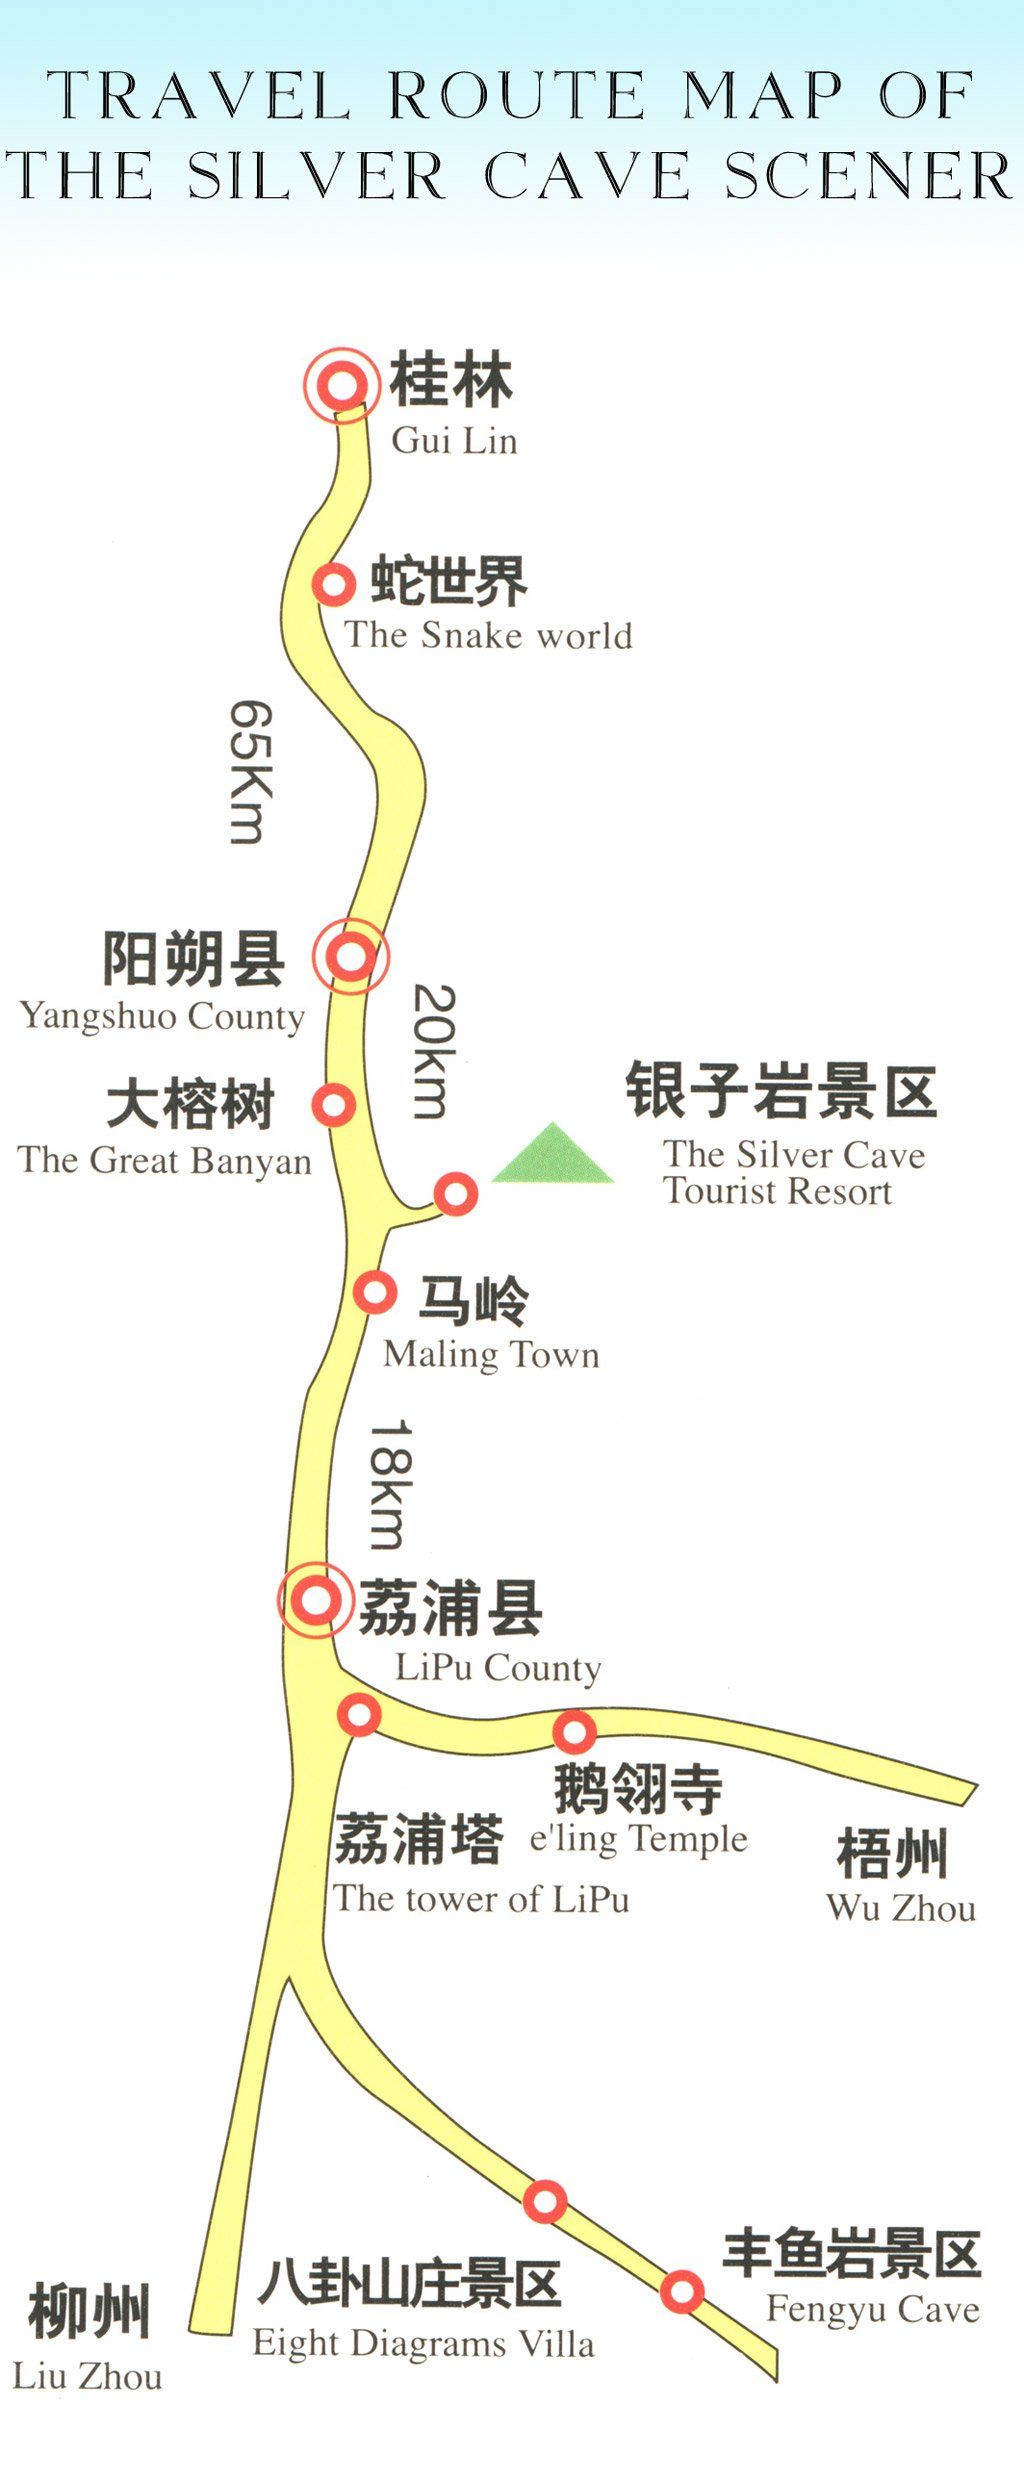 The Silver Cave Location Map